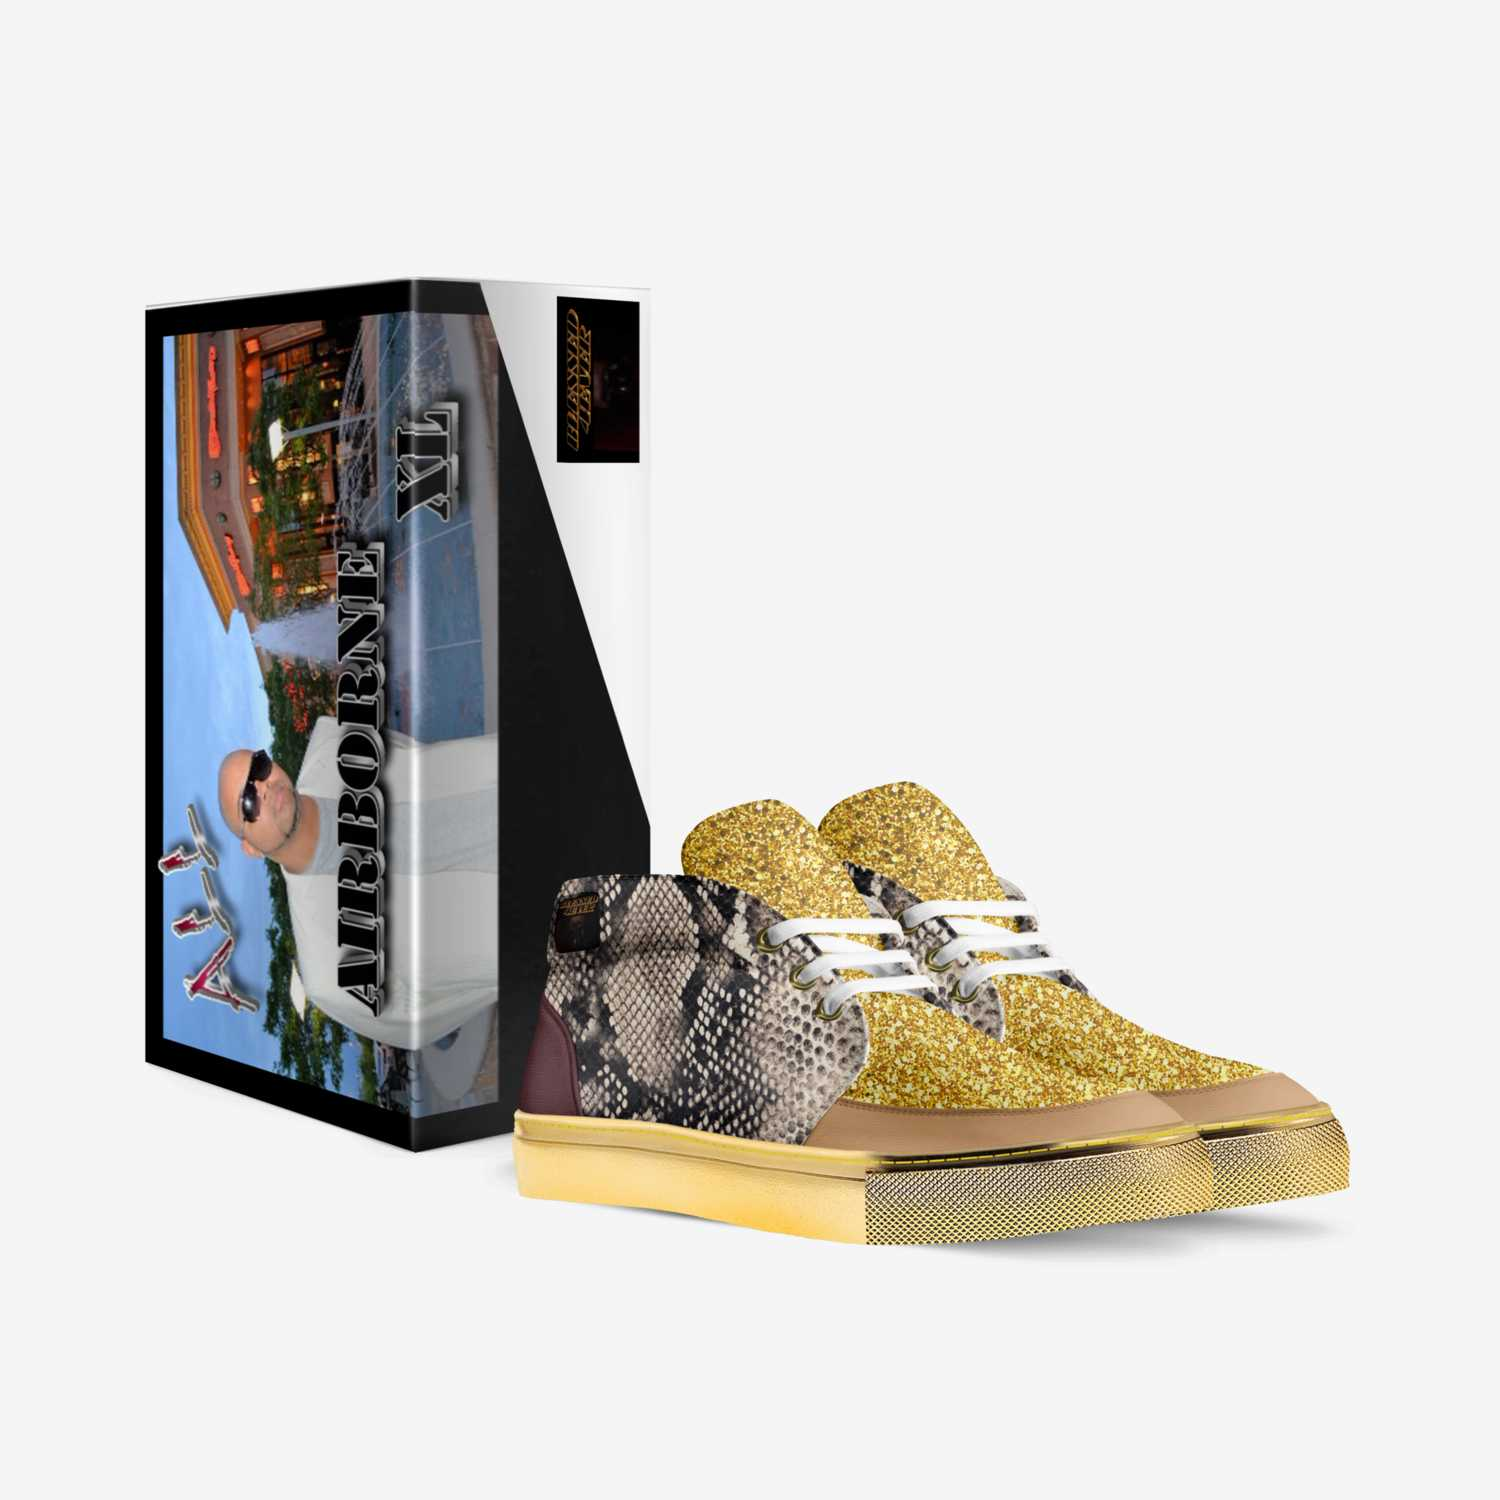 LION ICE custom made in Italy shoes by Germaine Fisher | Box view